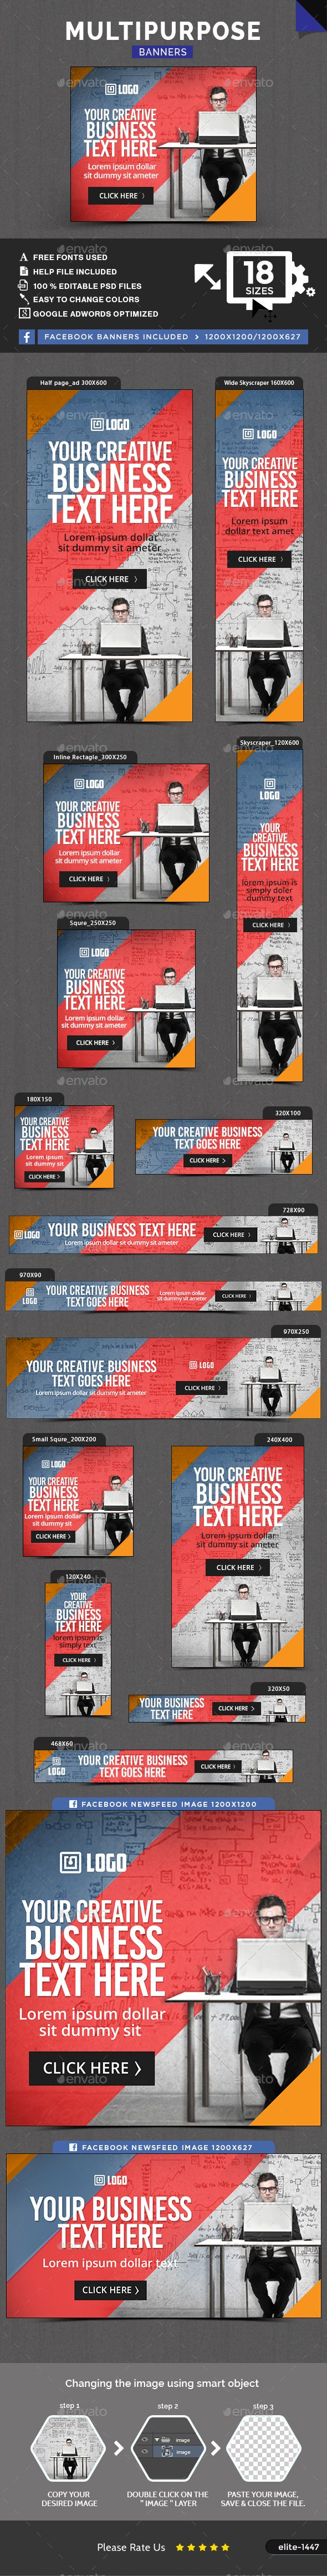 Multipurpose Web Banners Template PSD. Download here: http://graphicriver.net/item/multipurpose-banners/15995852?ref=ksioks